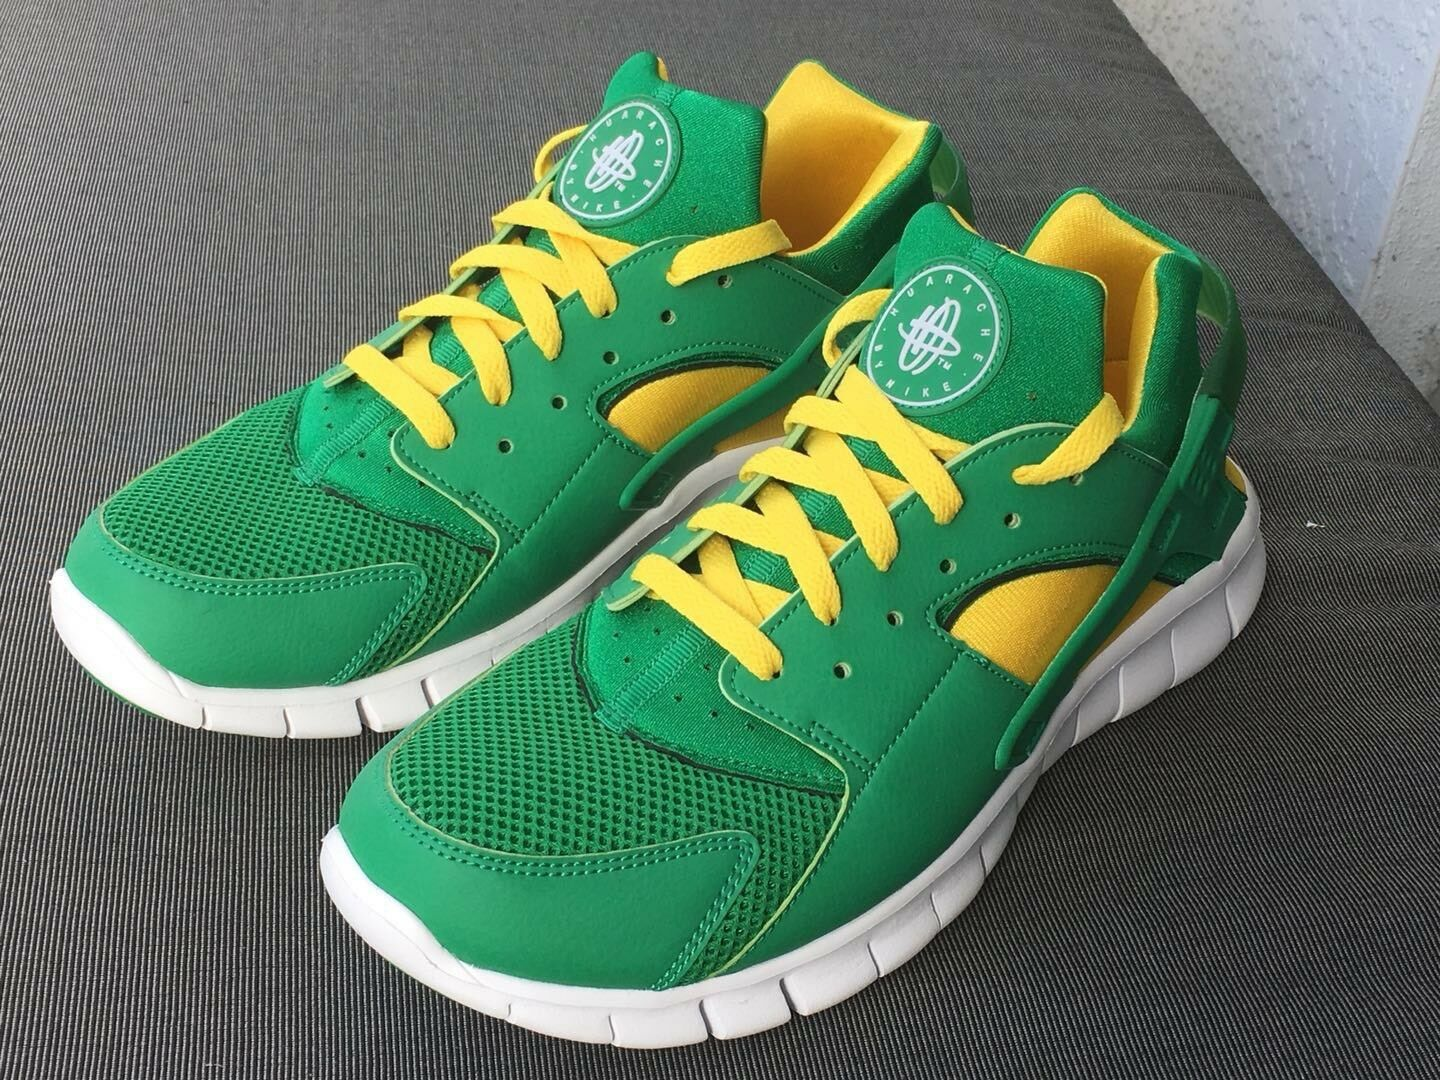 Cheap women's shoes women's shoes New Nike Huarache Oregon Ducks Sneakers Men Sz 10 W 11.5 Jordan Yeezy Hu